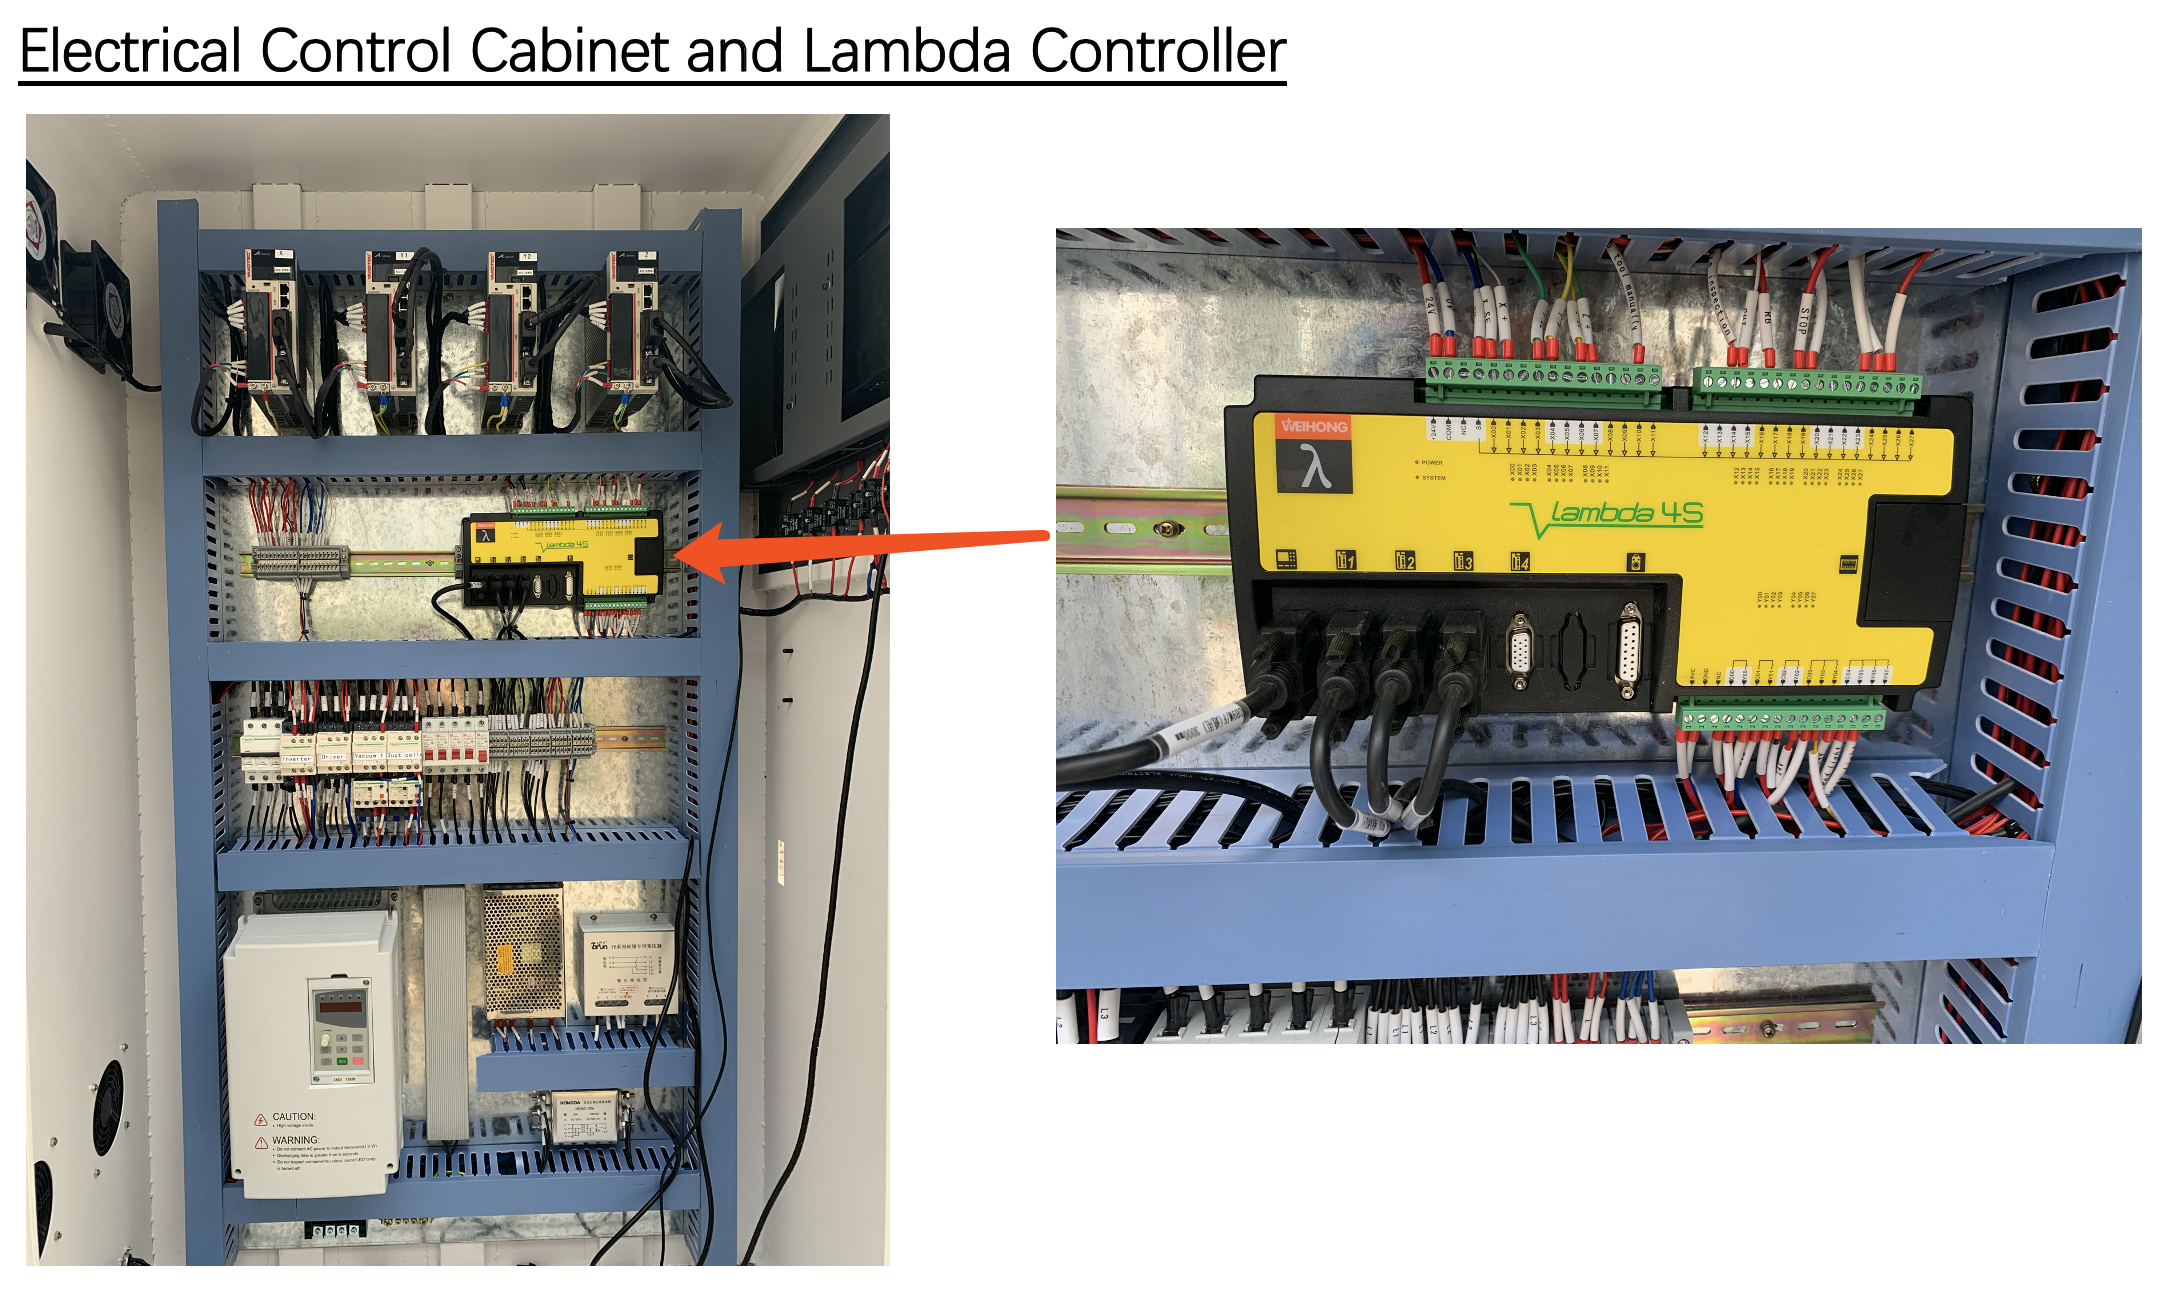 Electrical Control cabinet and Lambda controller